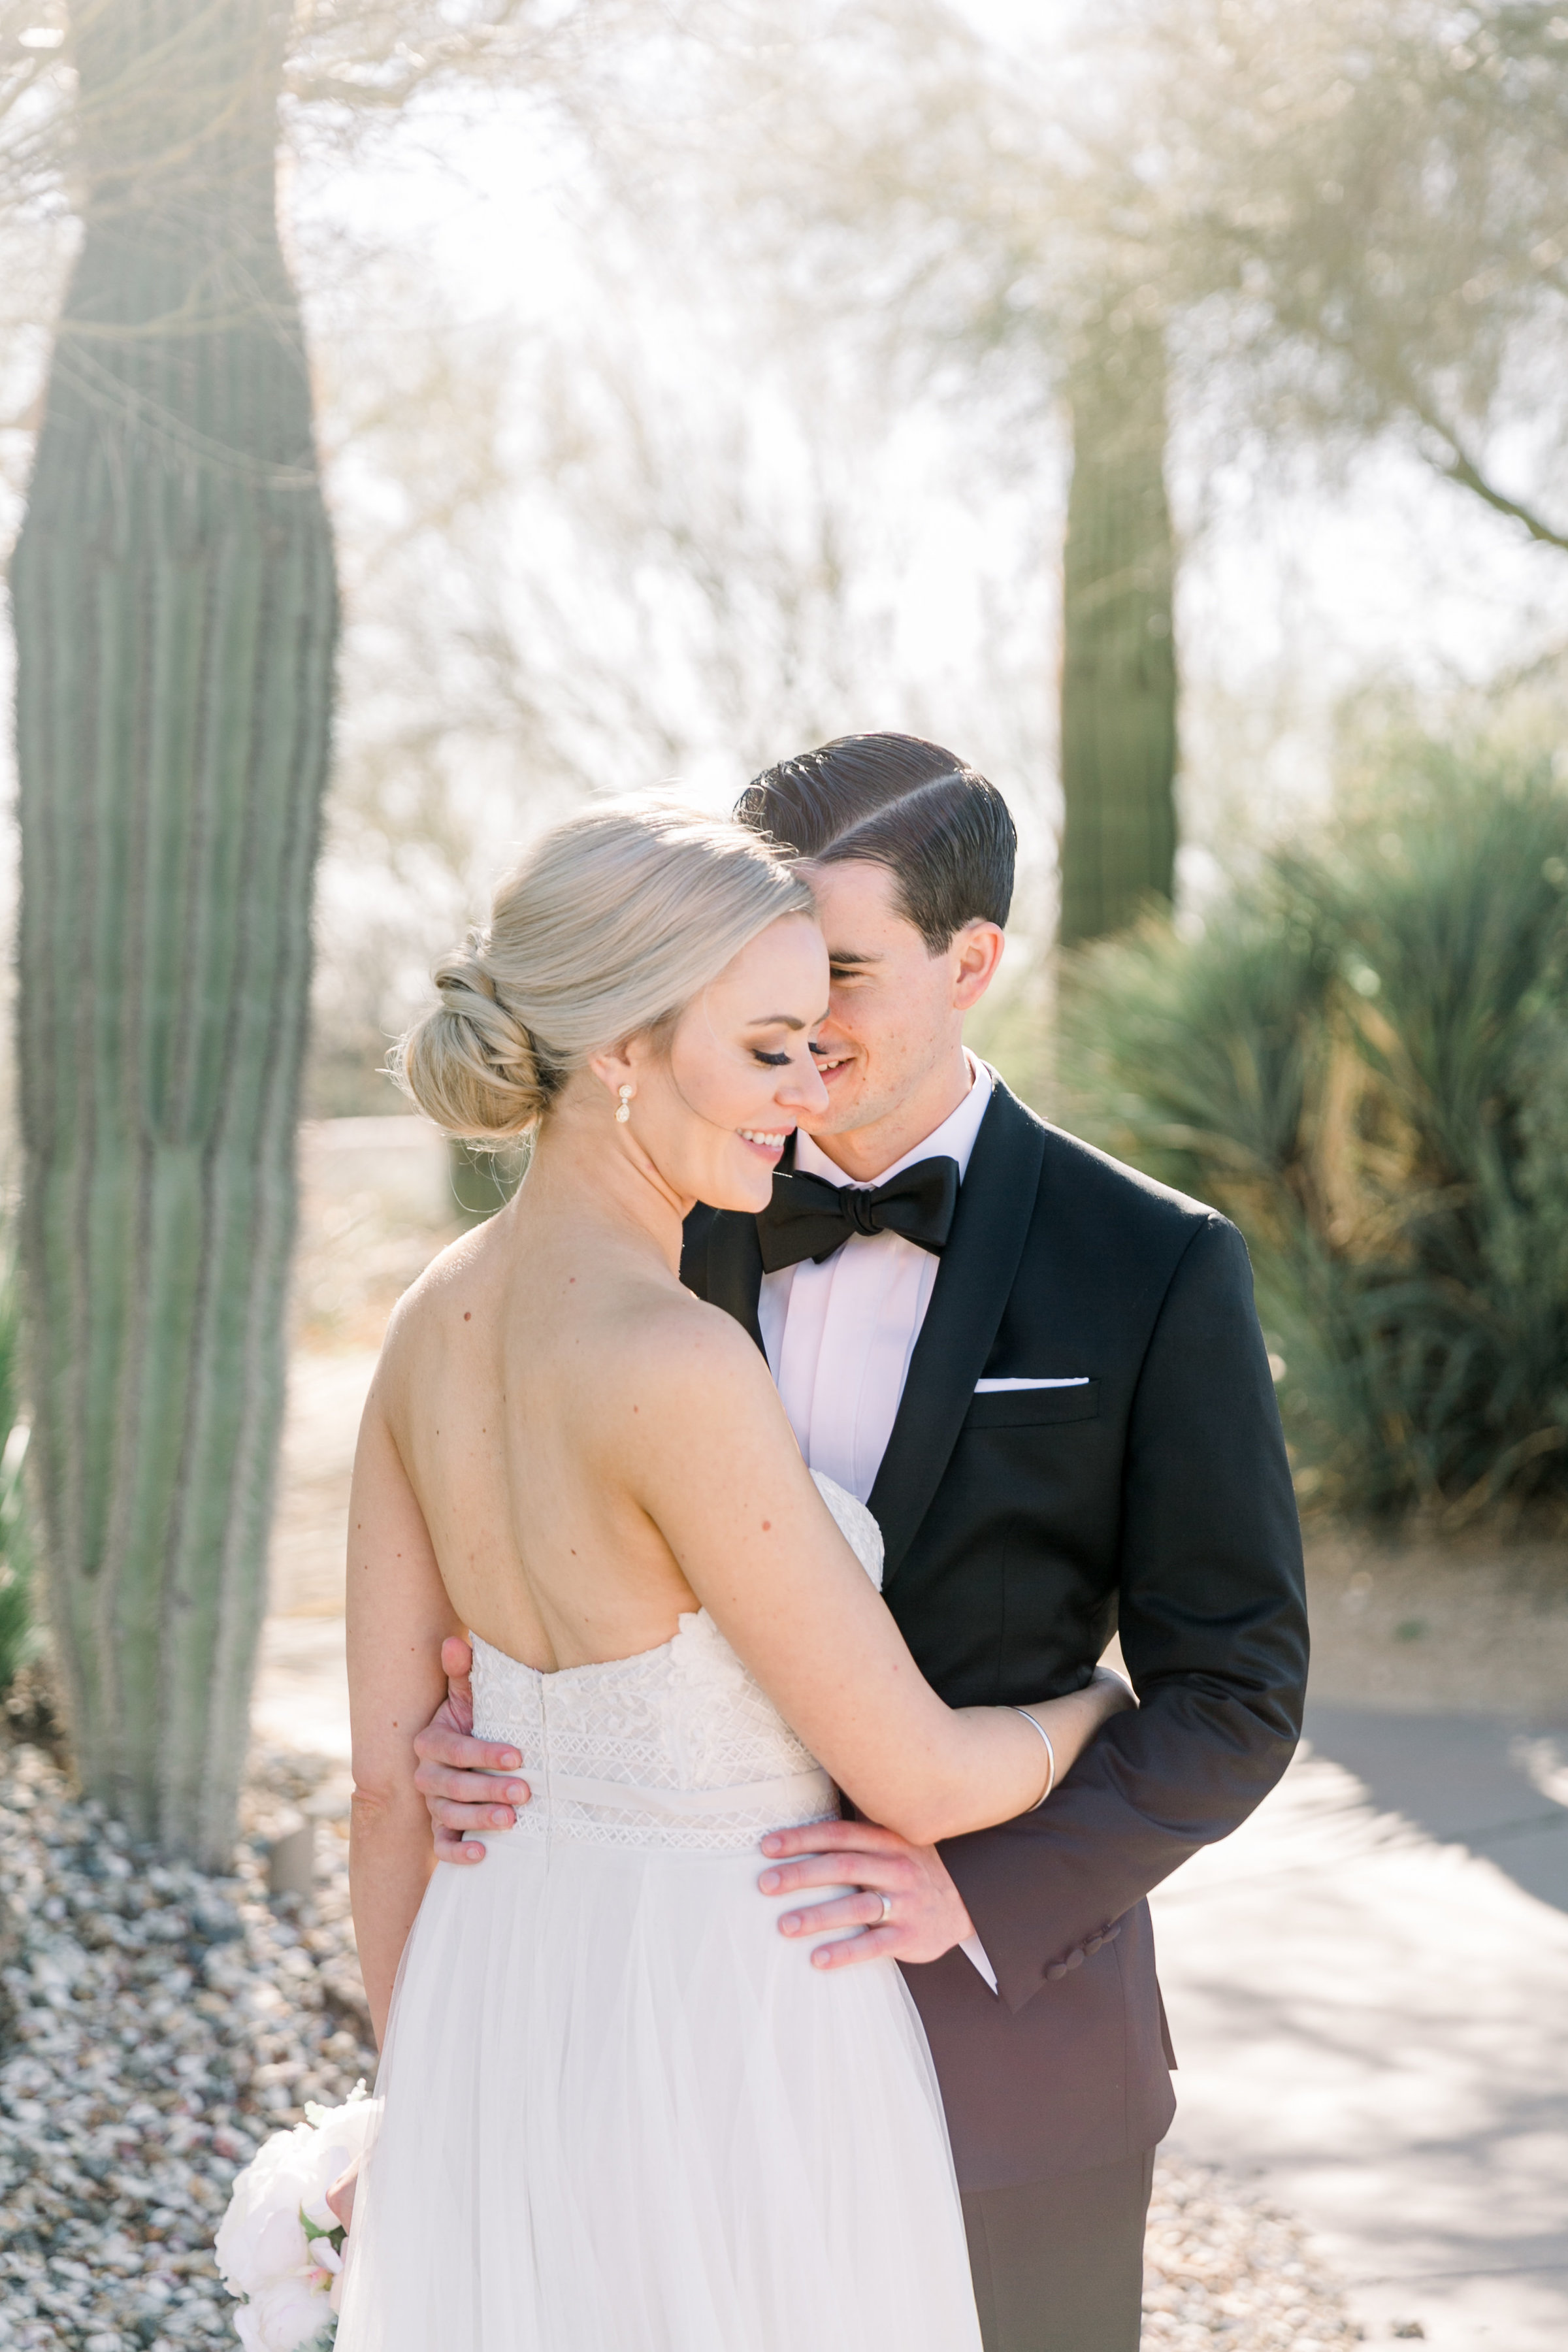 Karlie Colleen Photography - Arizona Wedding at The Troon Scottsdale Country Club - Paige & Shane -207